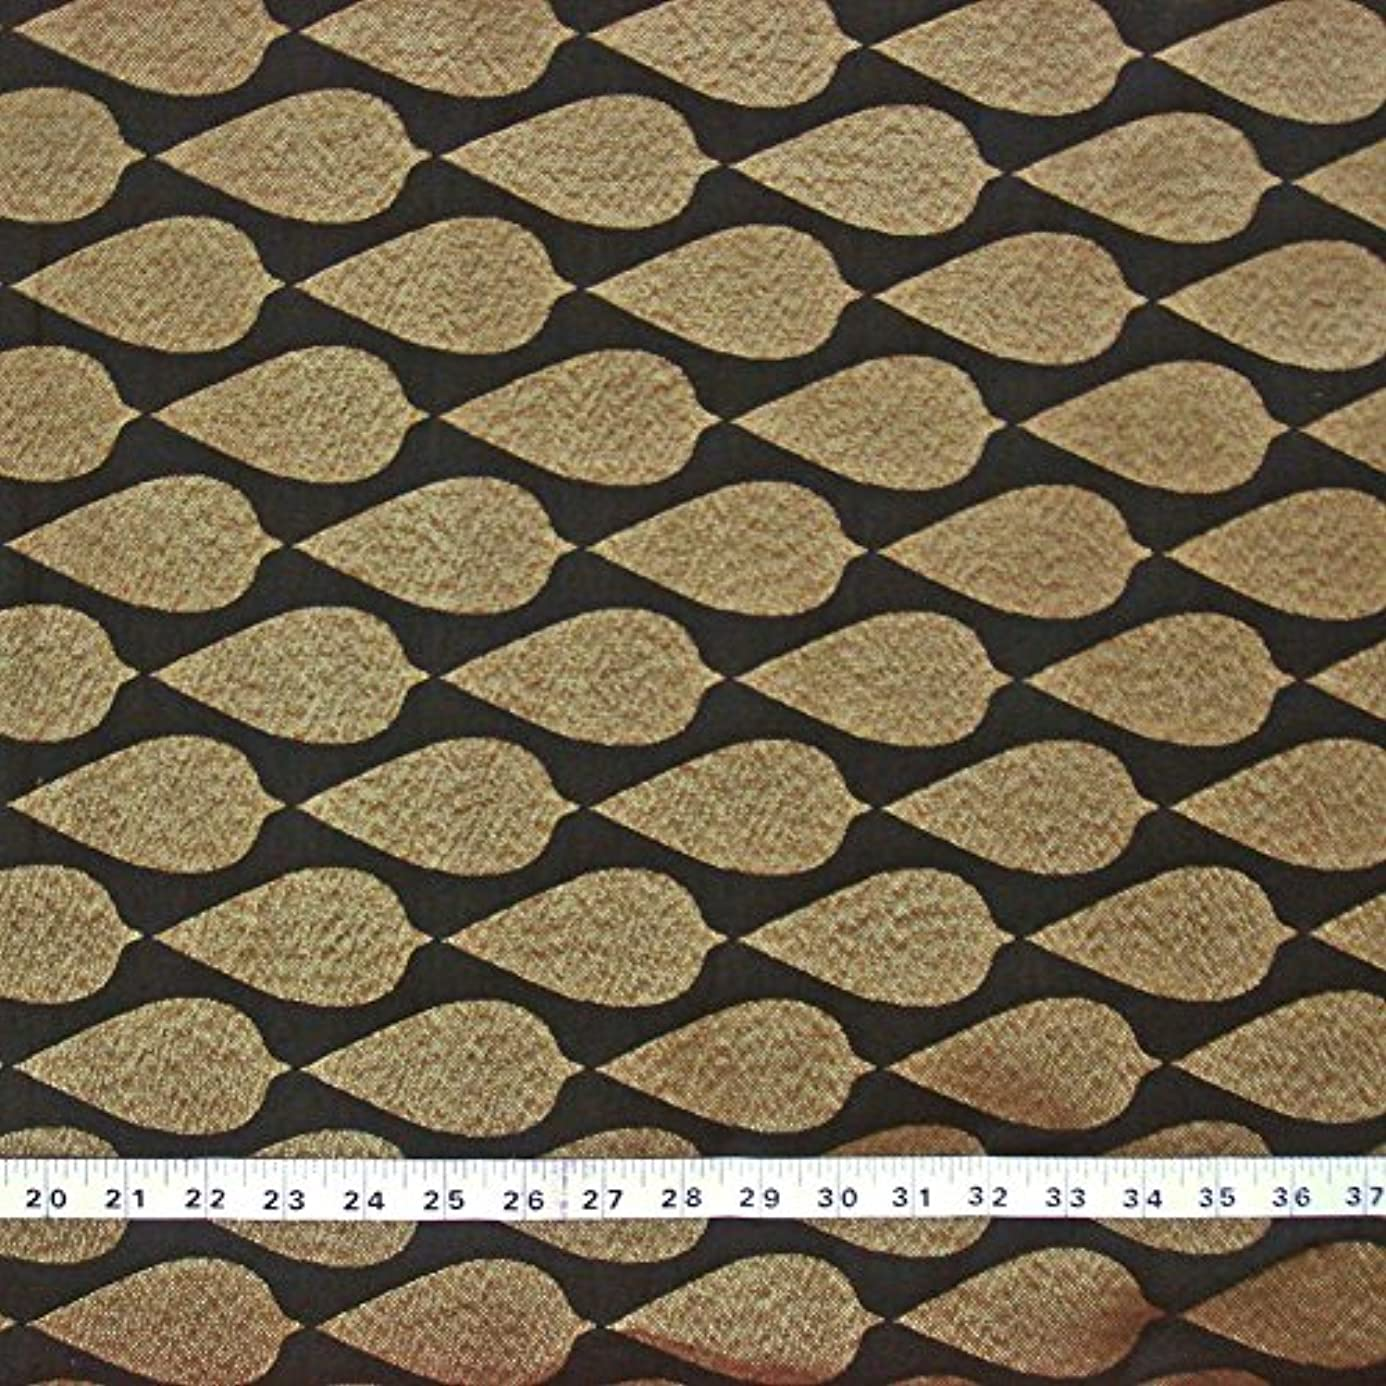 Black Decorative Brocade Fabric by The Yard, 44 Inches Gold Leaf Motif Graced Indian Fabric Dress Making Fabric oto3414022